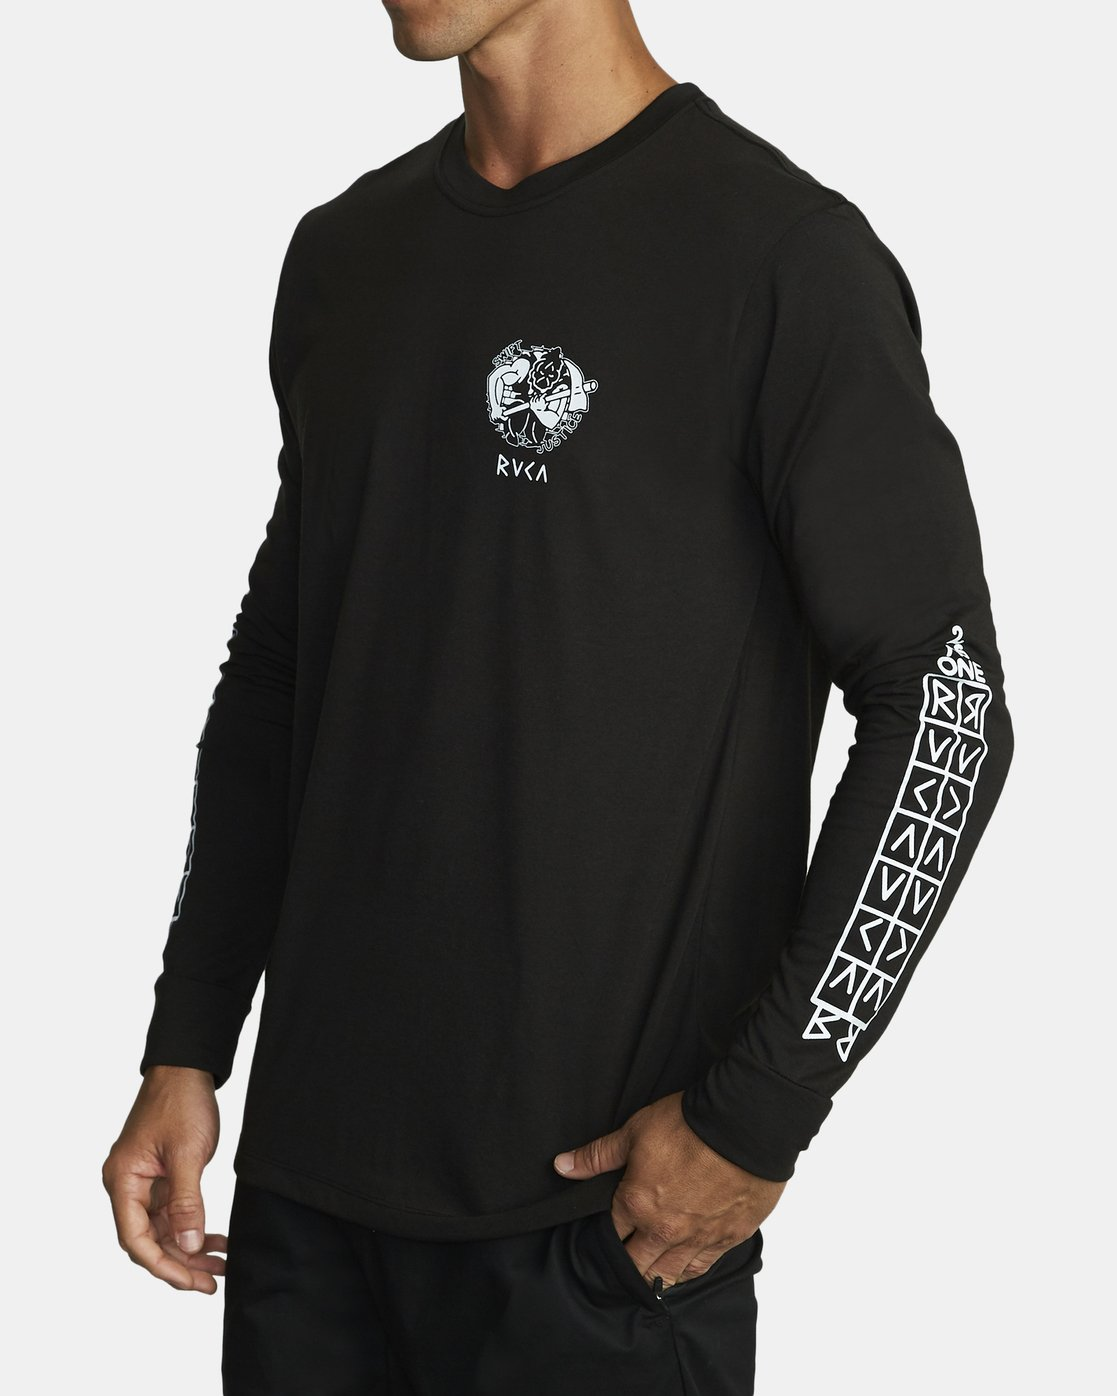 1 PROTECTION FROM LONG SLEEVE T-SHIRT Black V4532RPR RVCA